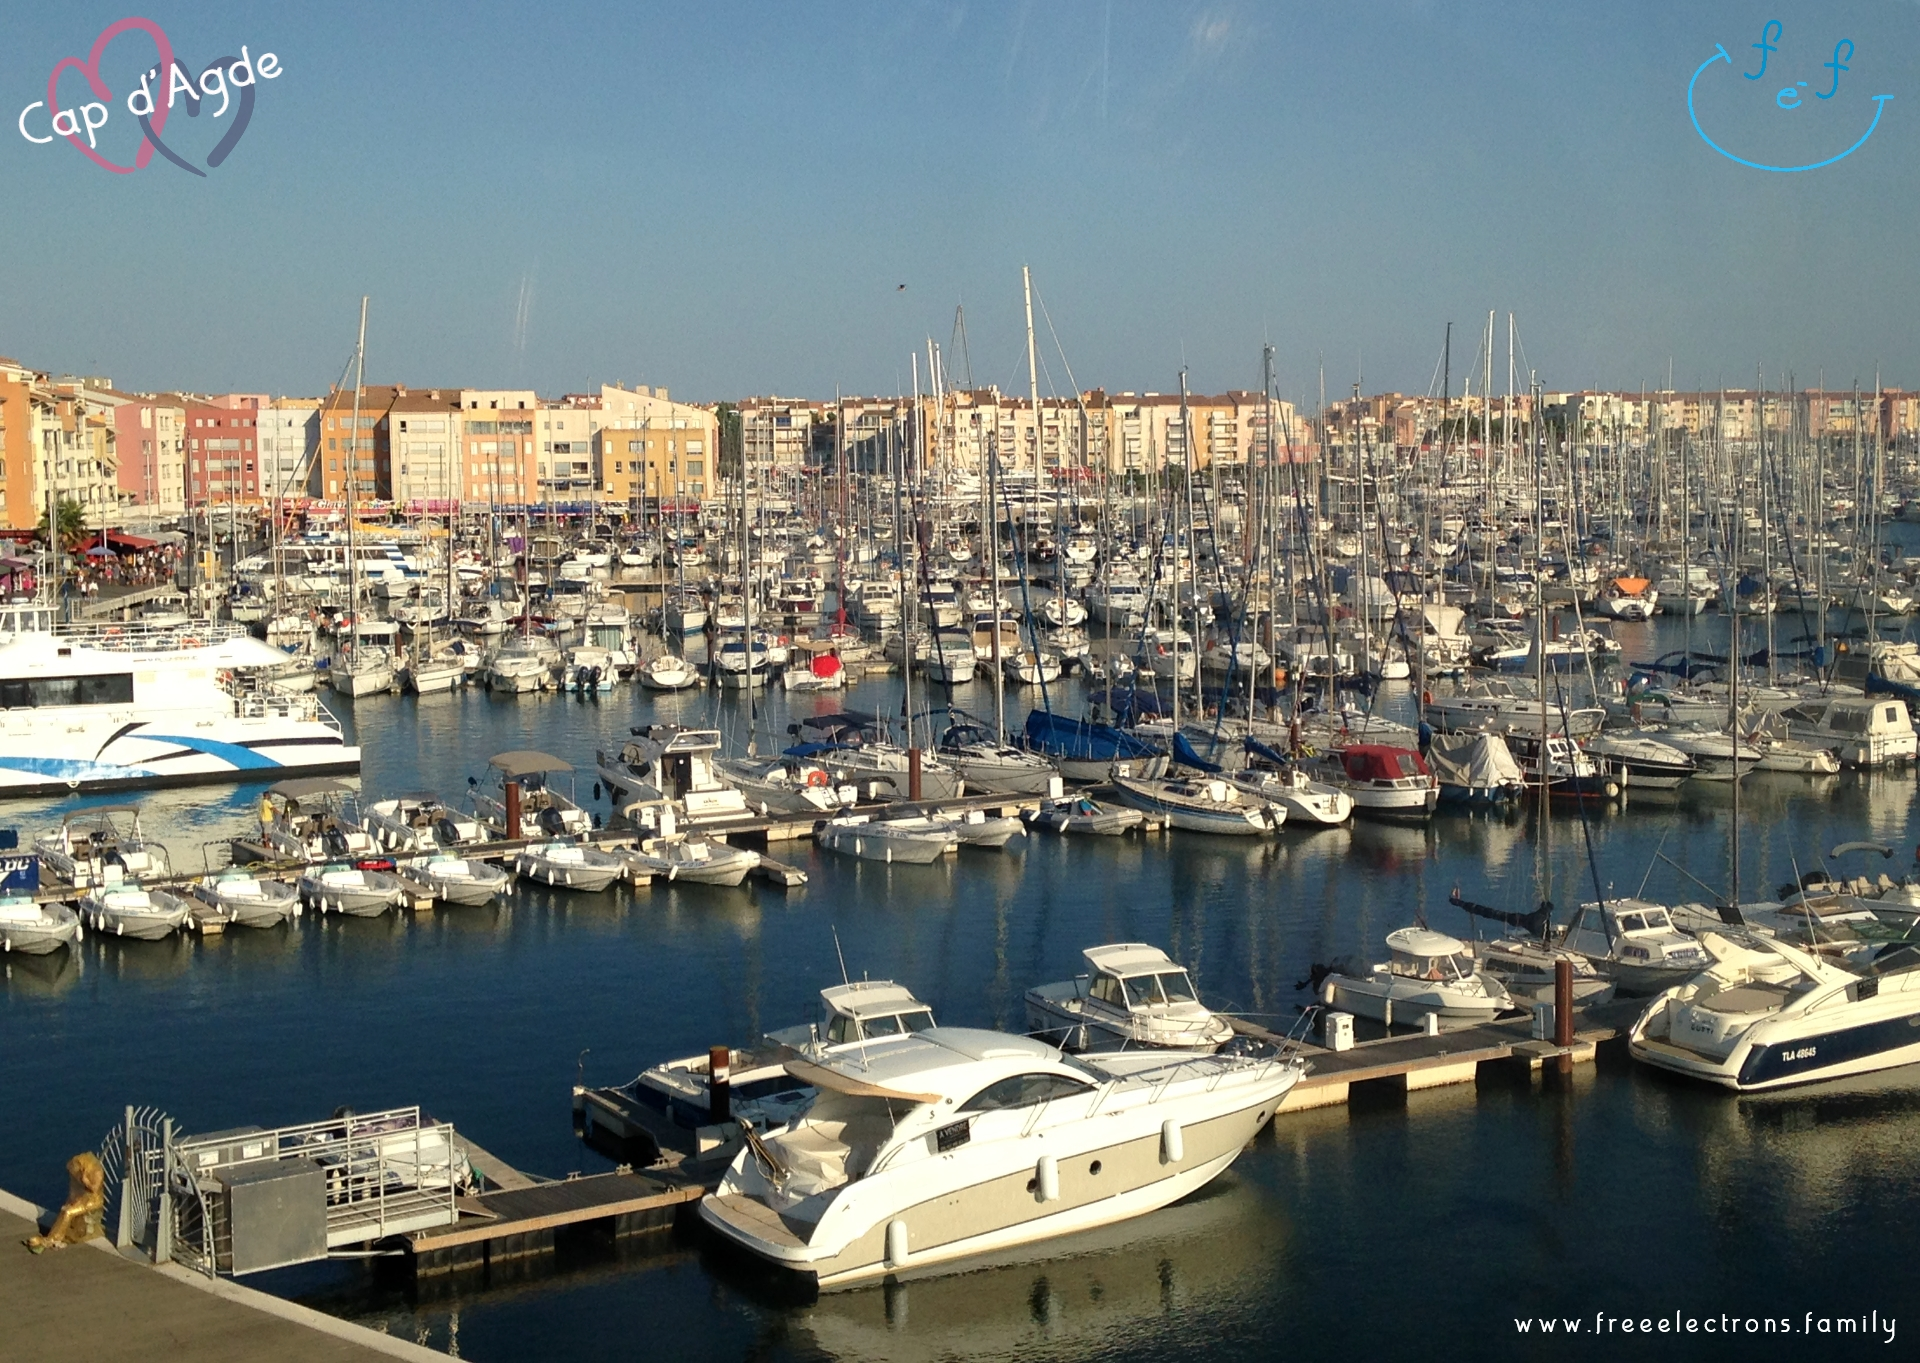 A view (from the ferris wheel) of Cap d'Agde's marina packed with modern boats in the foreground and buildings in the background.  #FreeElectrons.Family - camping road trip Europe, Cap d'Agde France.